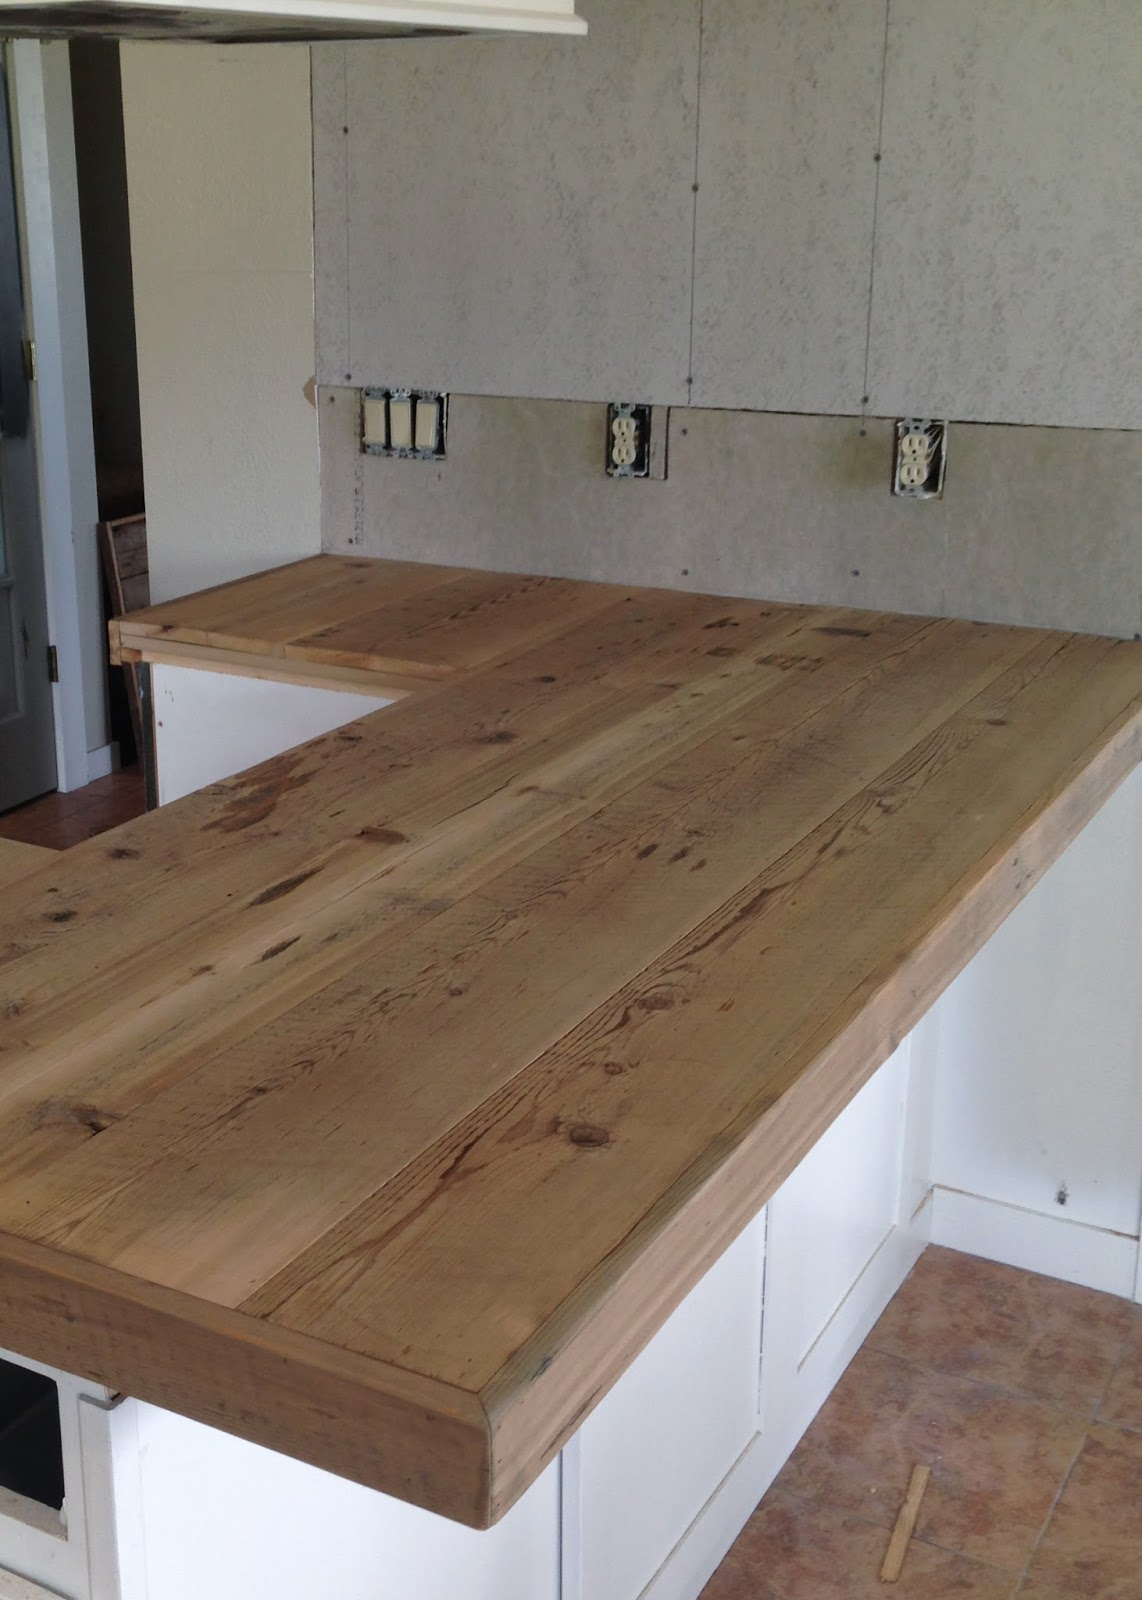 ... Reclaimed Wood Countertop Averie Lane: DIY Reclaimed Wood Countertop